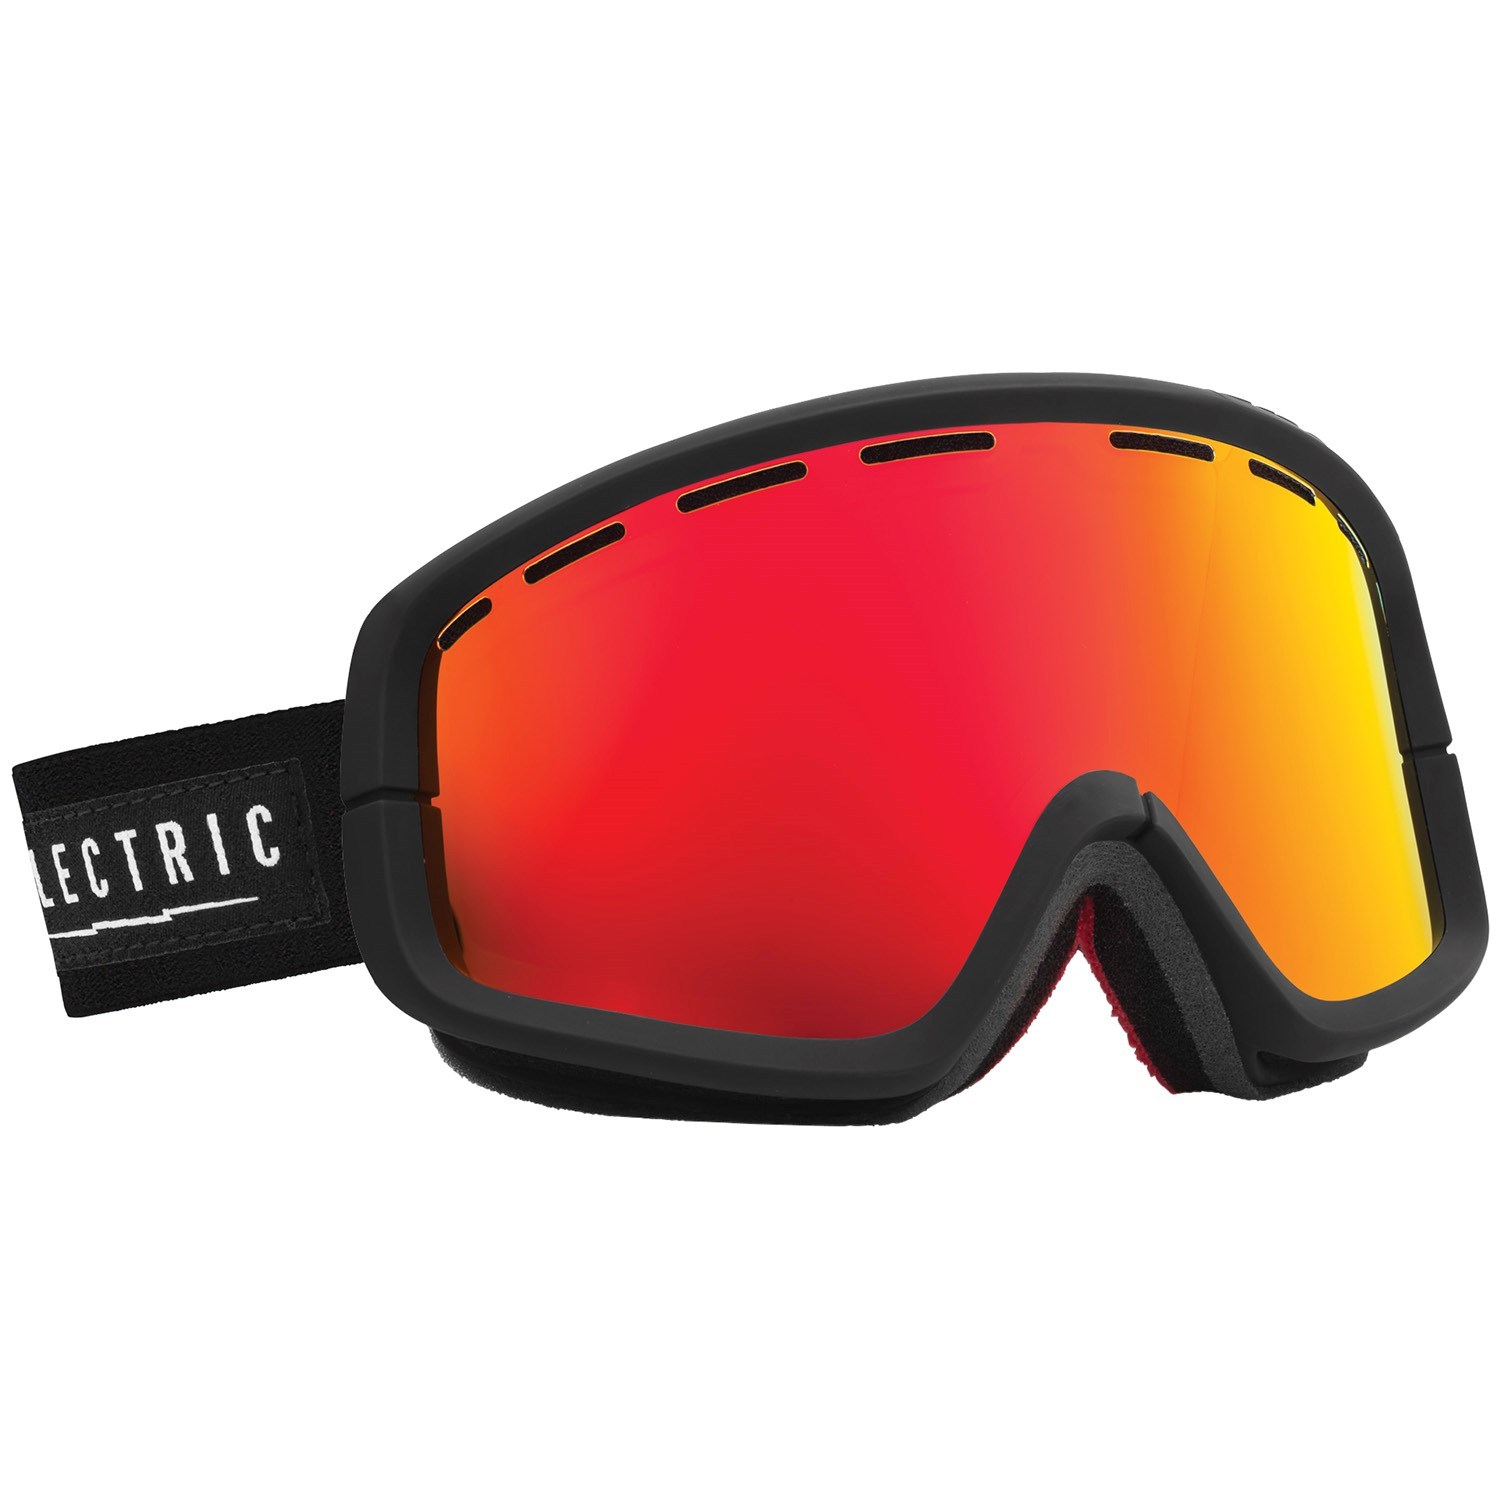 electric egb2 goggles evo